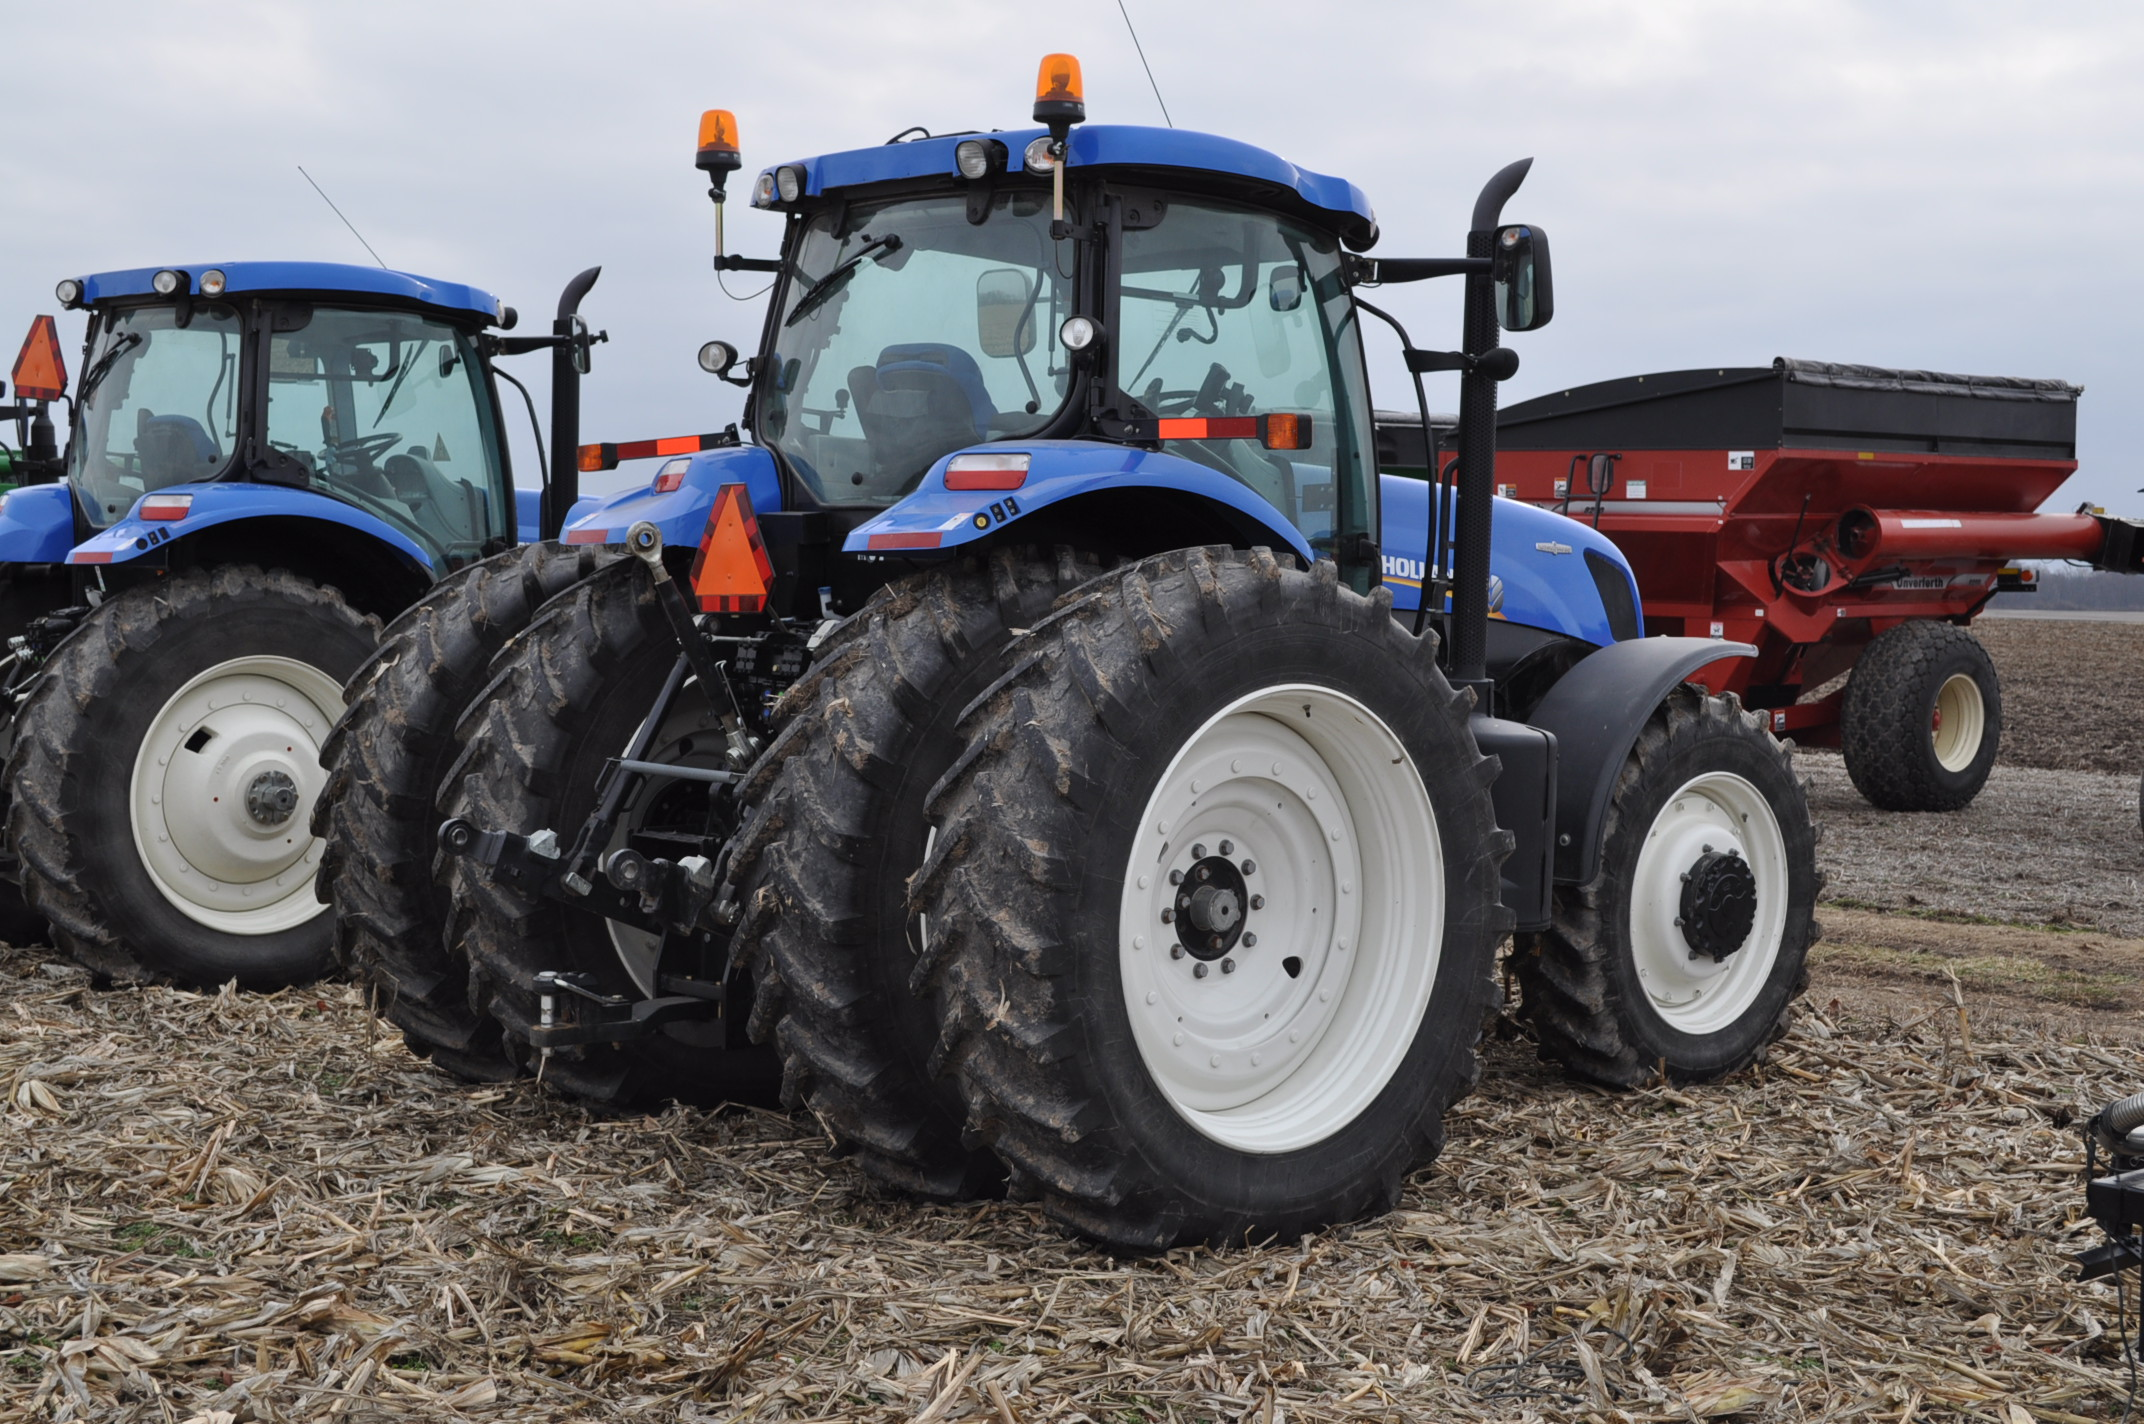 New Holland T7.250 tractor, 480/80 R 46 duals, Michelin 380/85 R 34 front, Super Steer, front wts, - Image 3 of 28